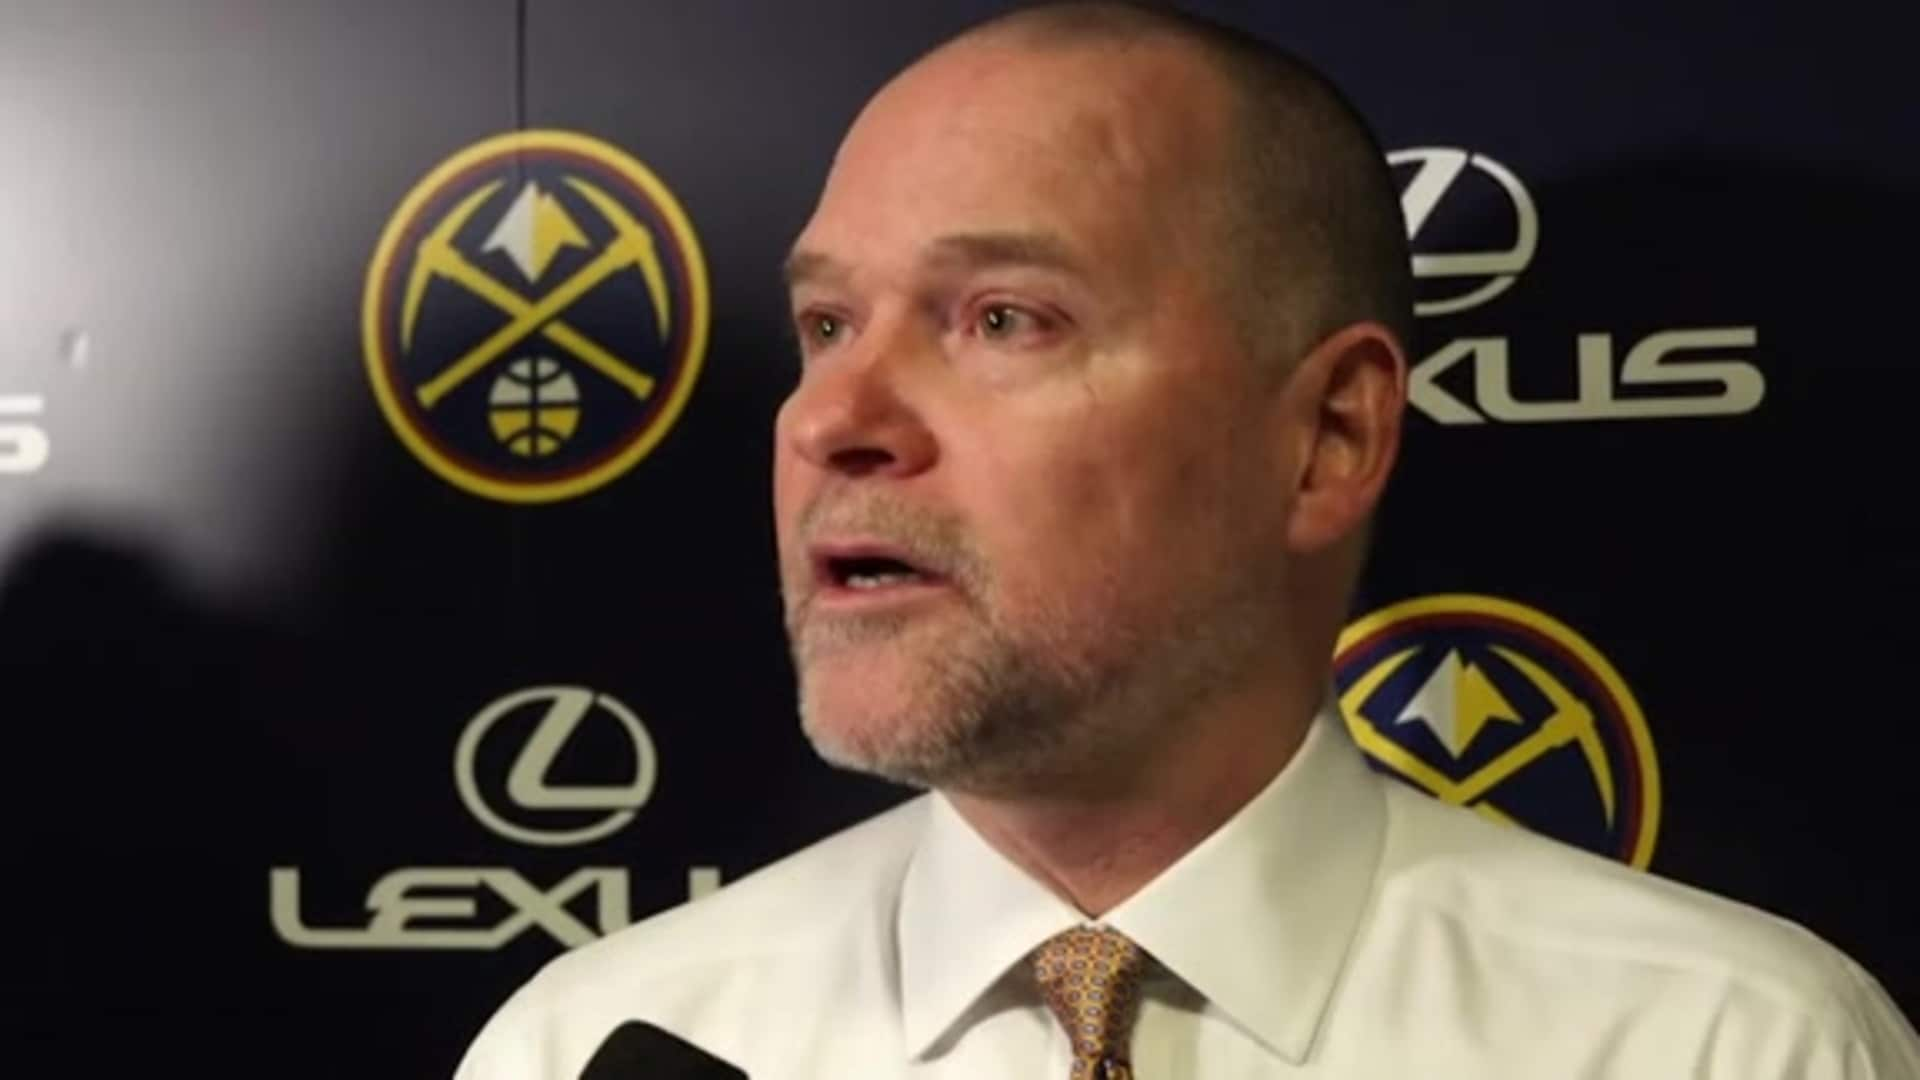 Nuggets vs. Trail Blazers: Michael Malone postgame interview